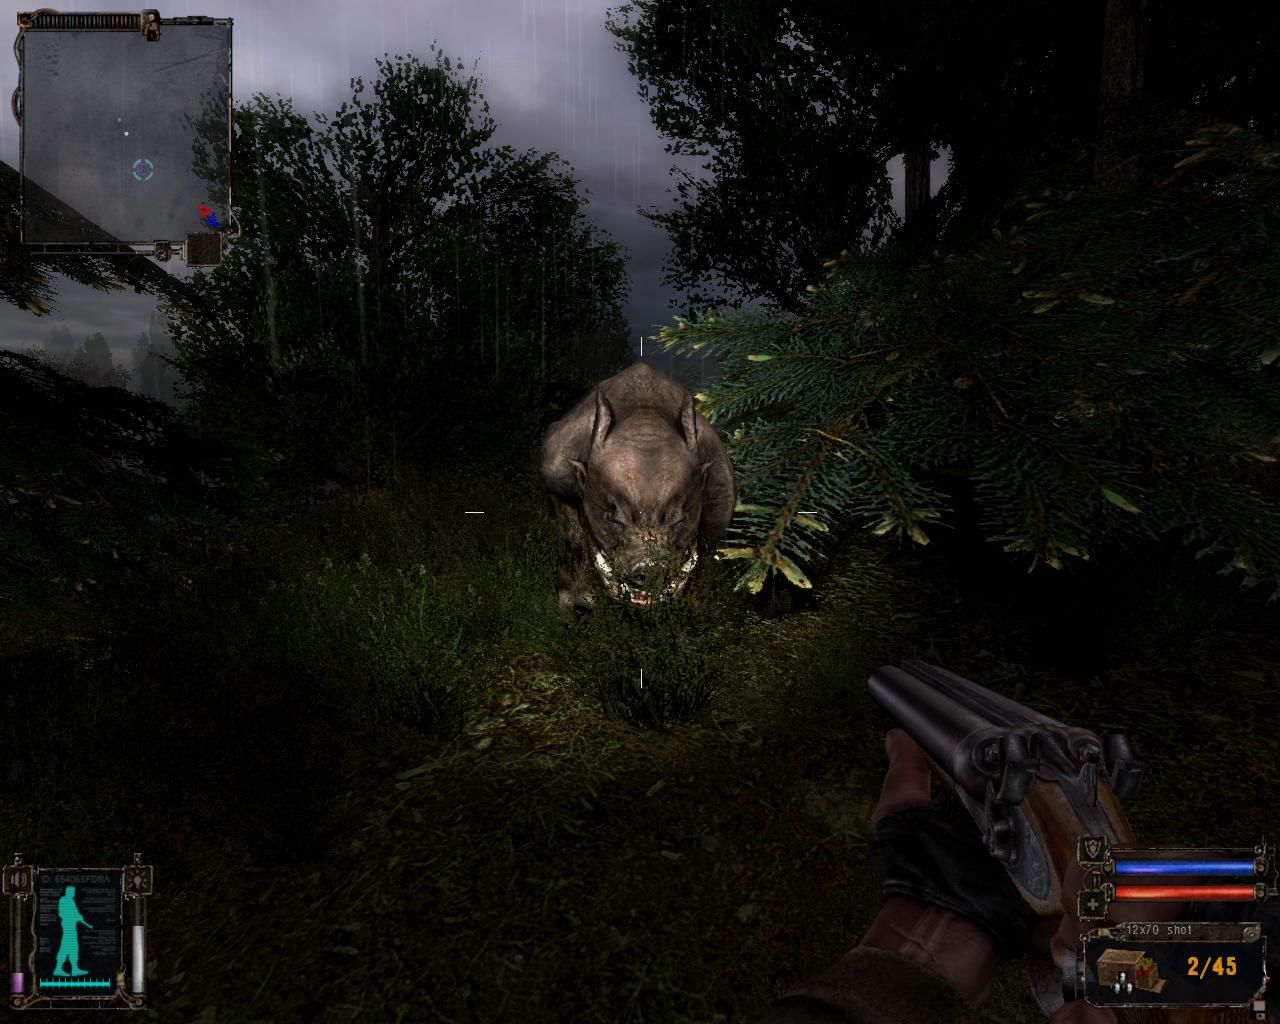 S.T.A.L.K.E.R.: Shadow of Chernobyl Windows Hunting for mutated boars.